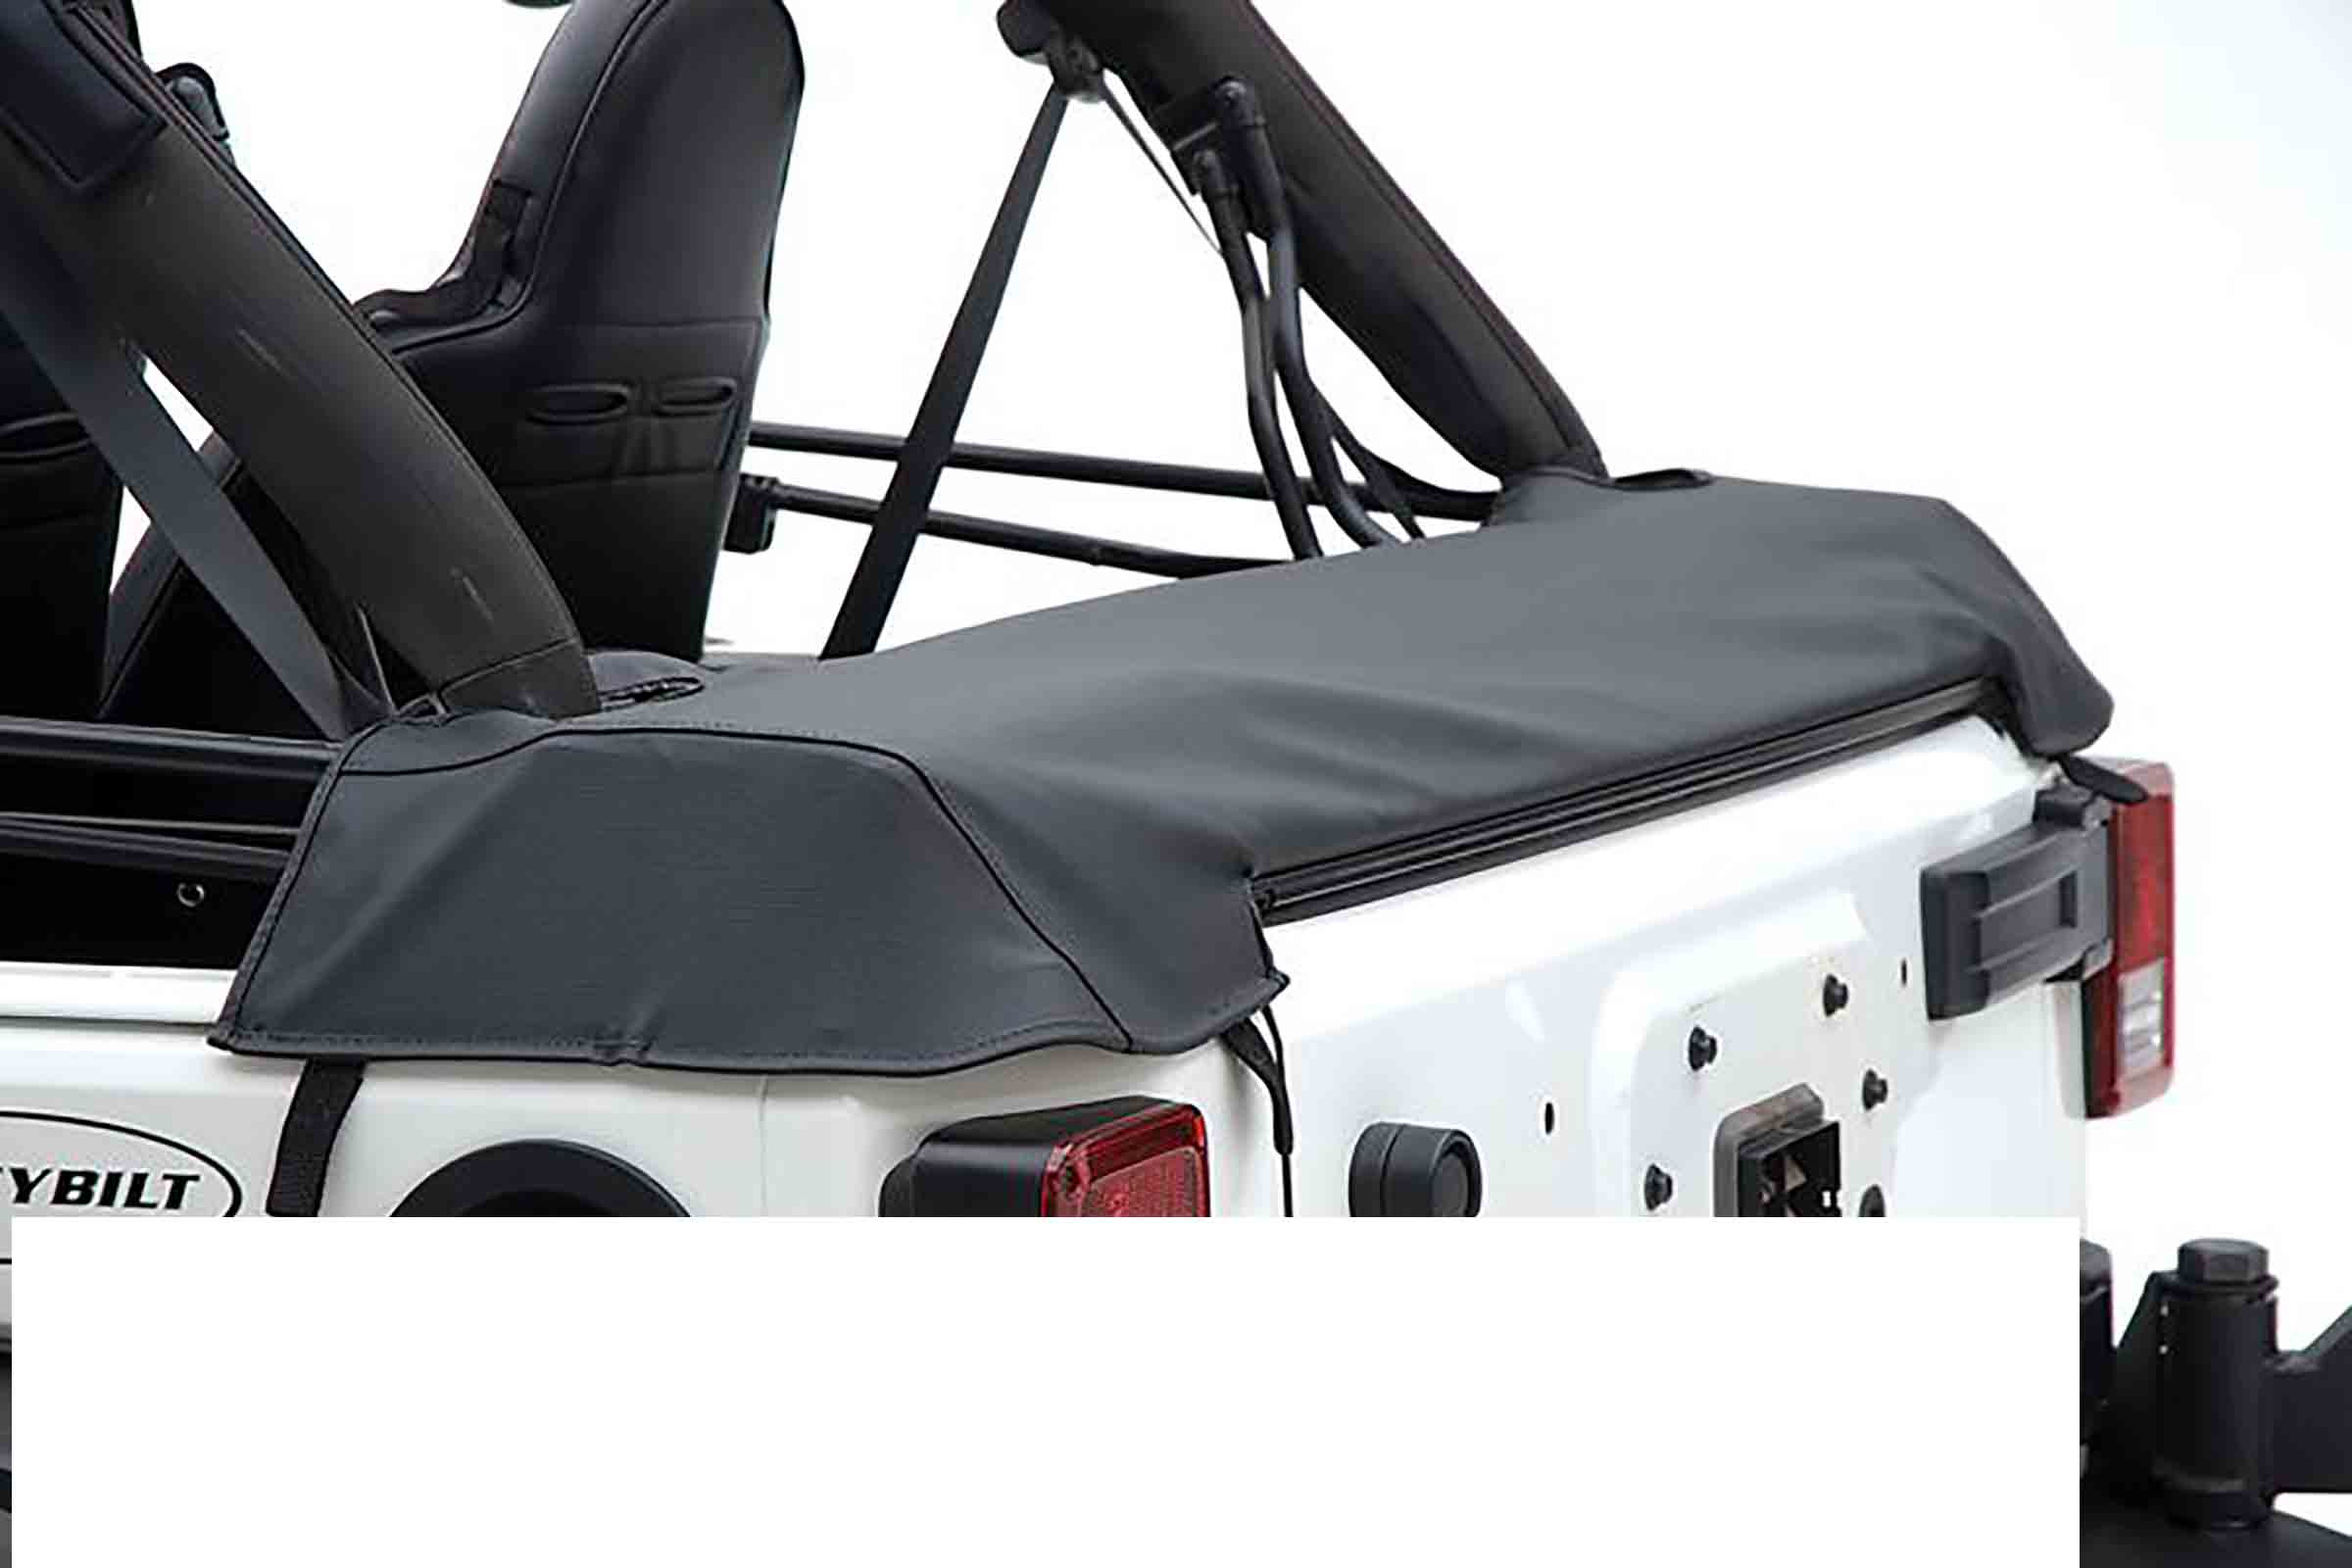 Soft top deposito bagagliaio wrangler jk 07 16 black diamond ricambi jeep